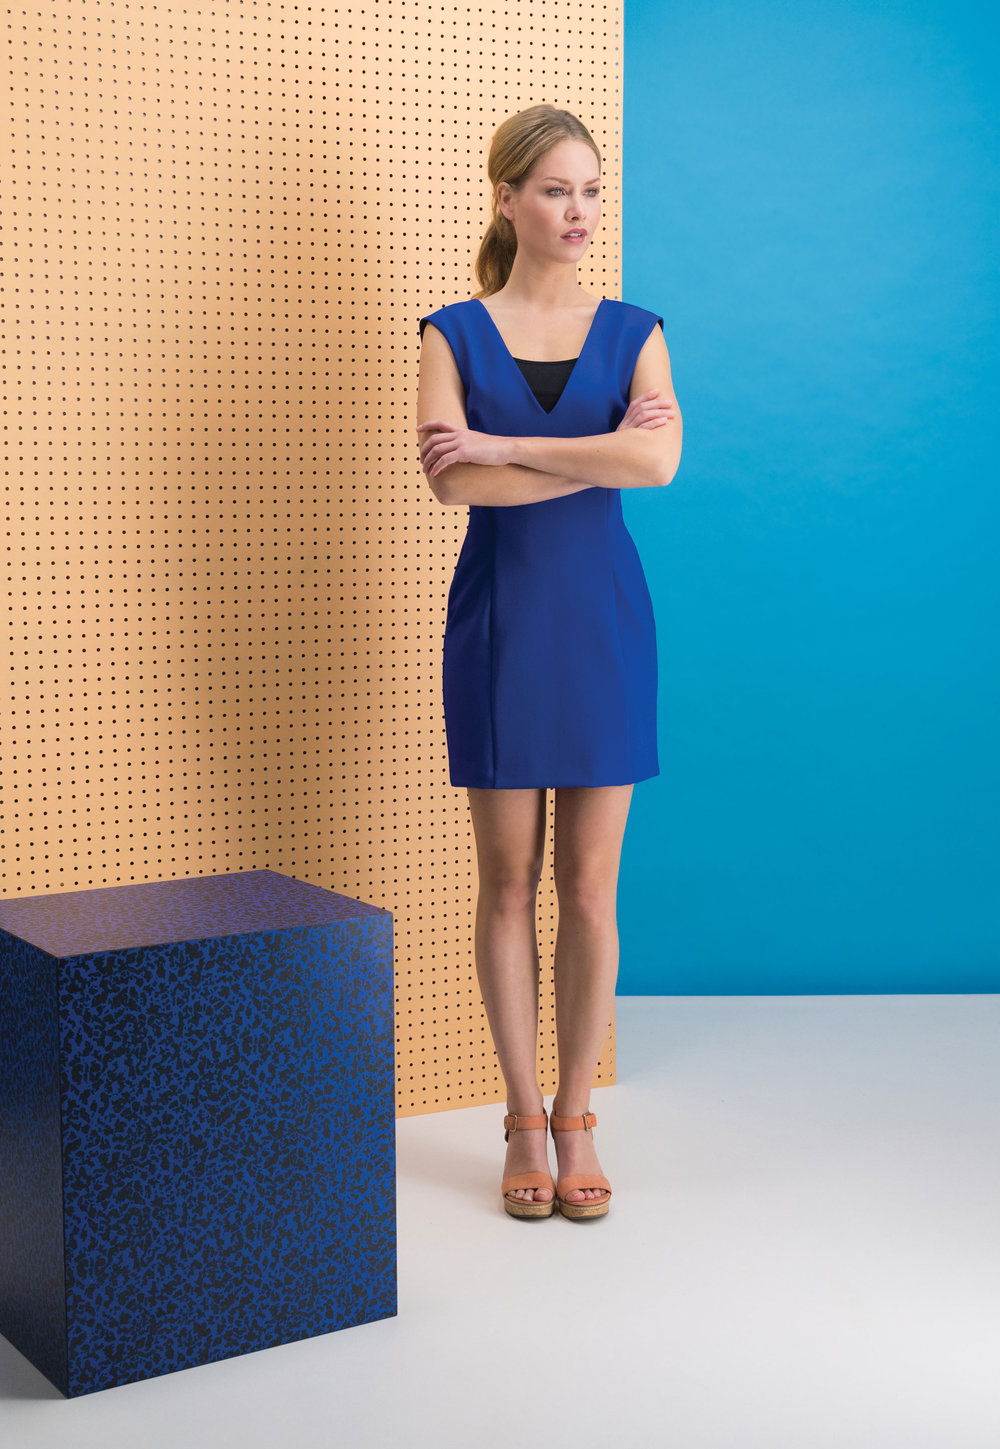 Marianne-blue-dress-blue-set.jpg